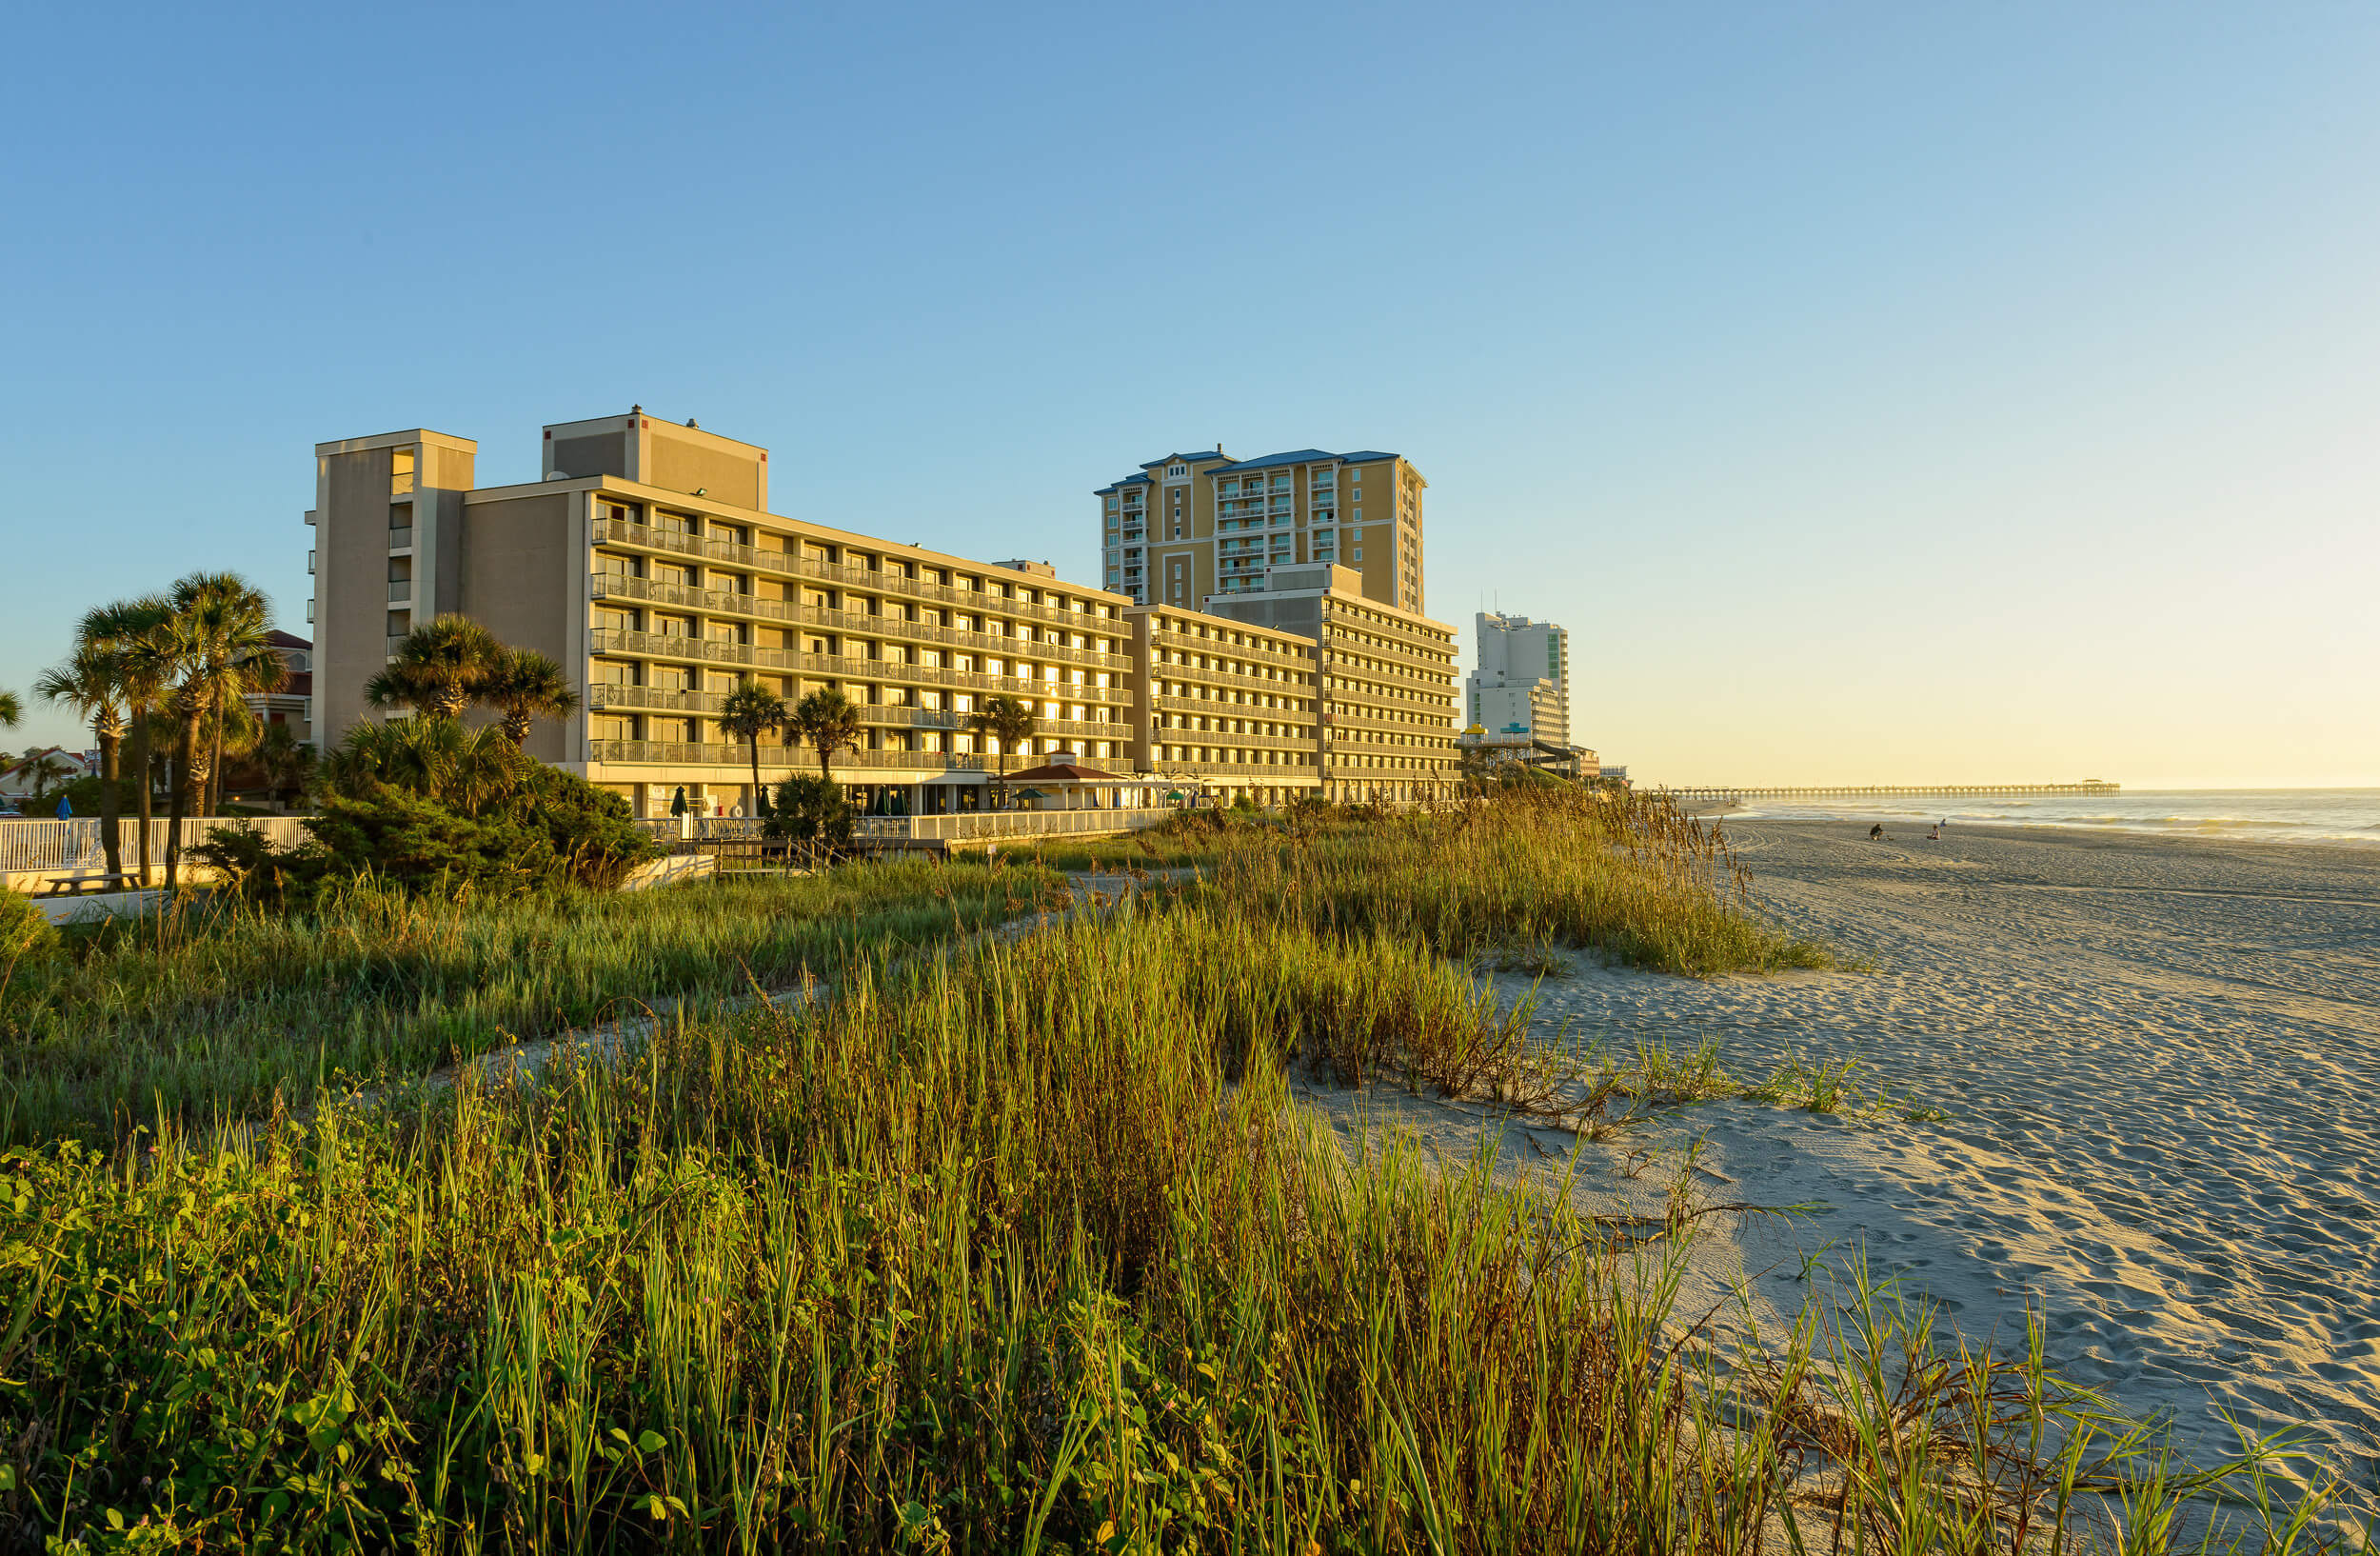 Oceanfront hotels in Myrtle Beach South Carolina | Westgate Myrtle Beach Oceanfront Resort | Westgate Resorts